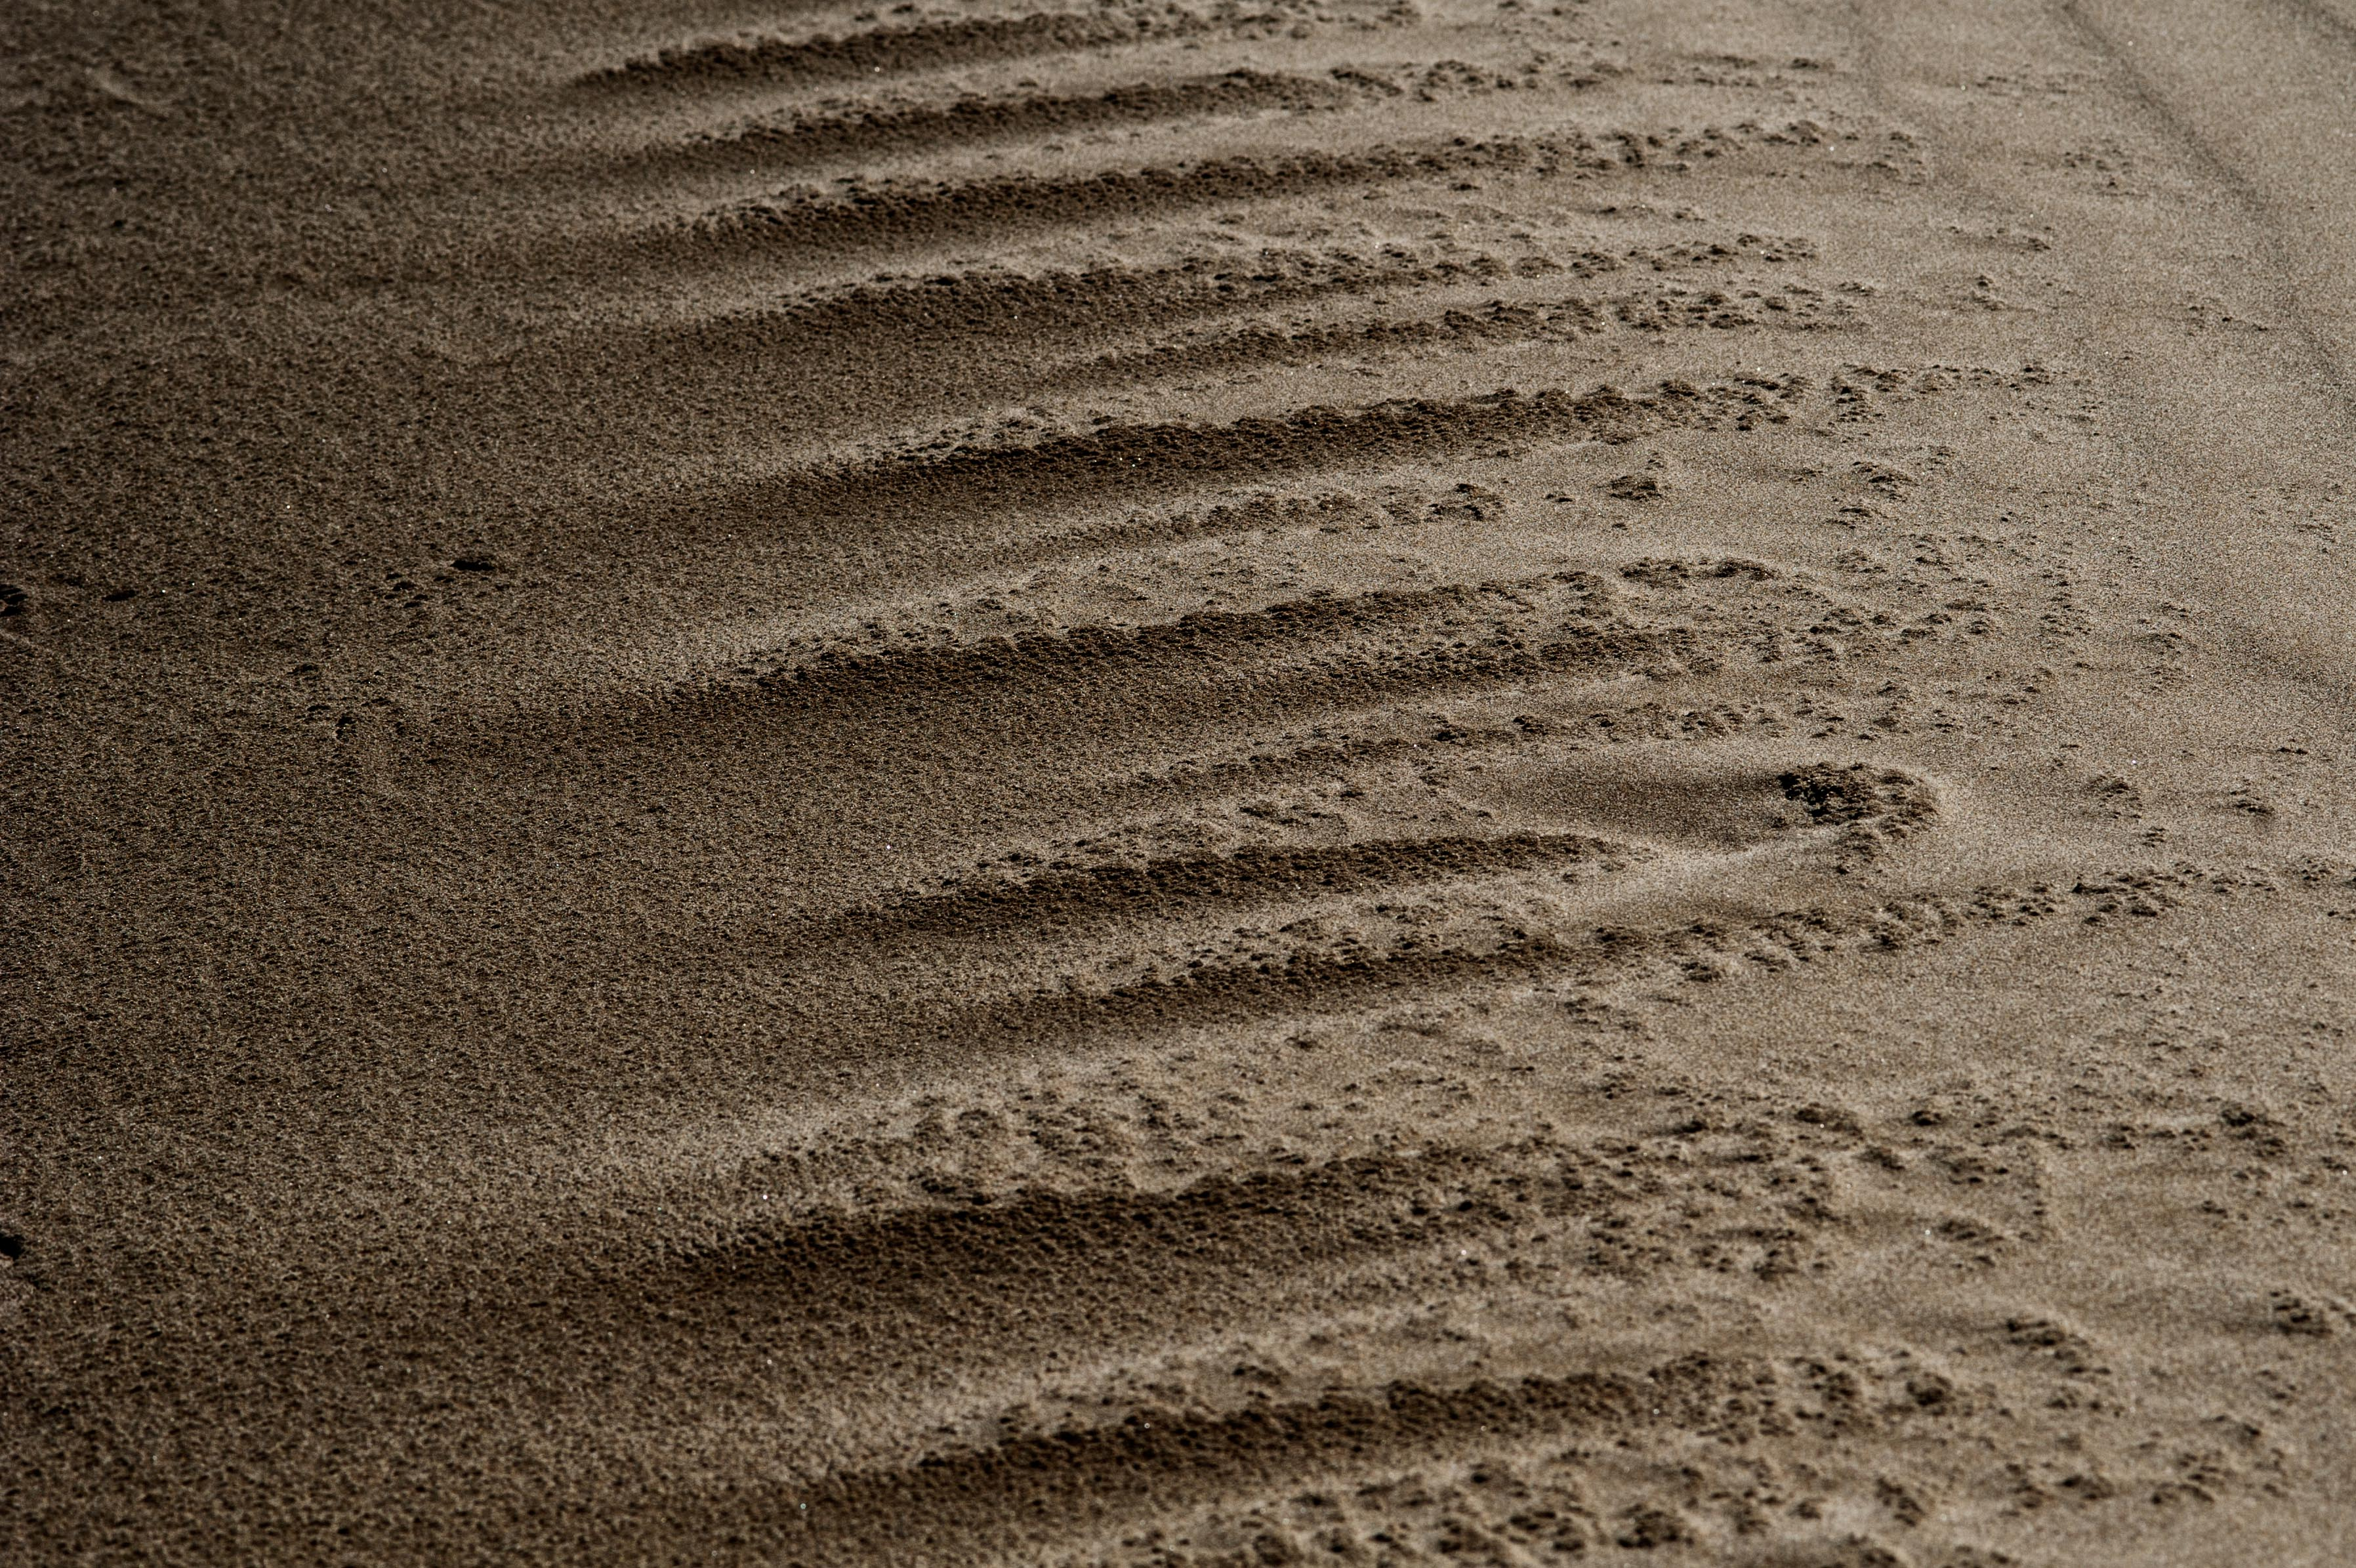 Picture of sand by vincent turin